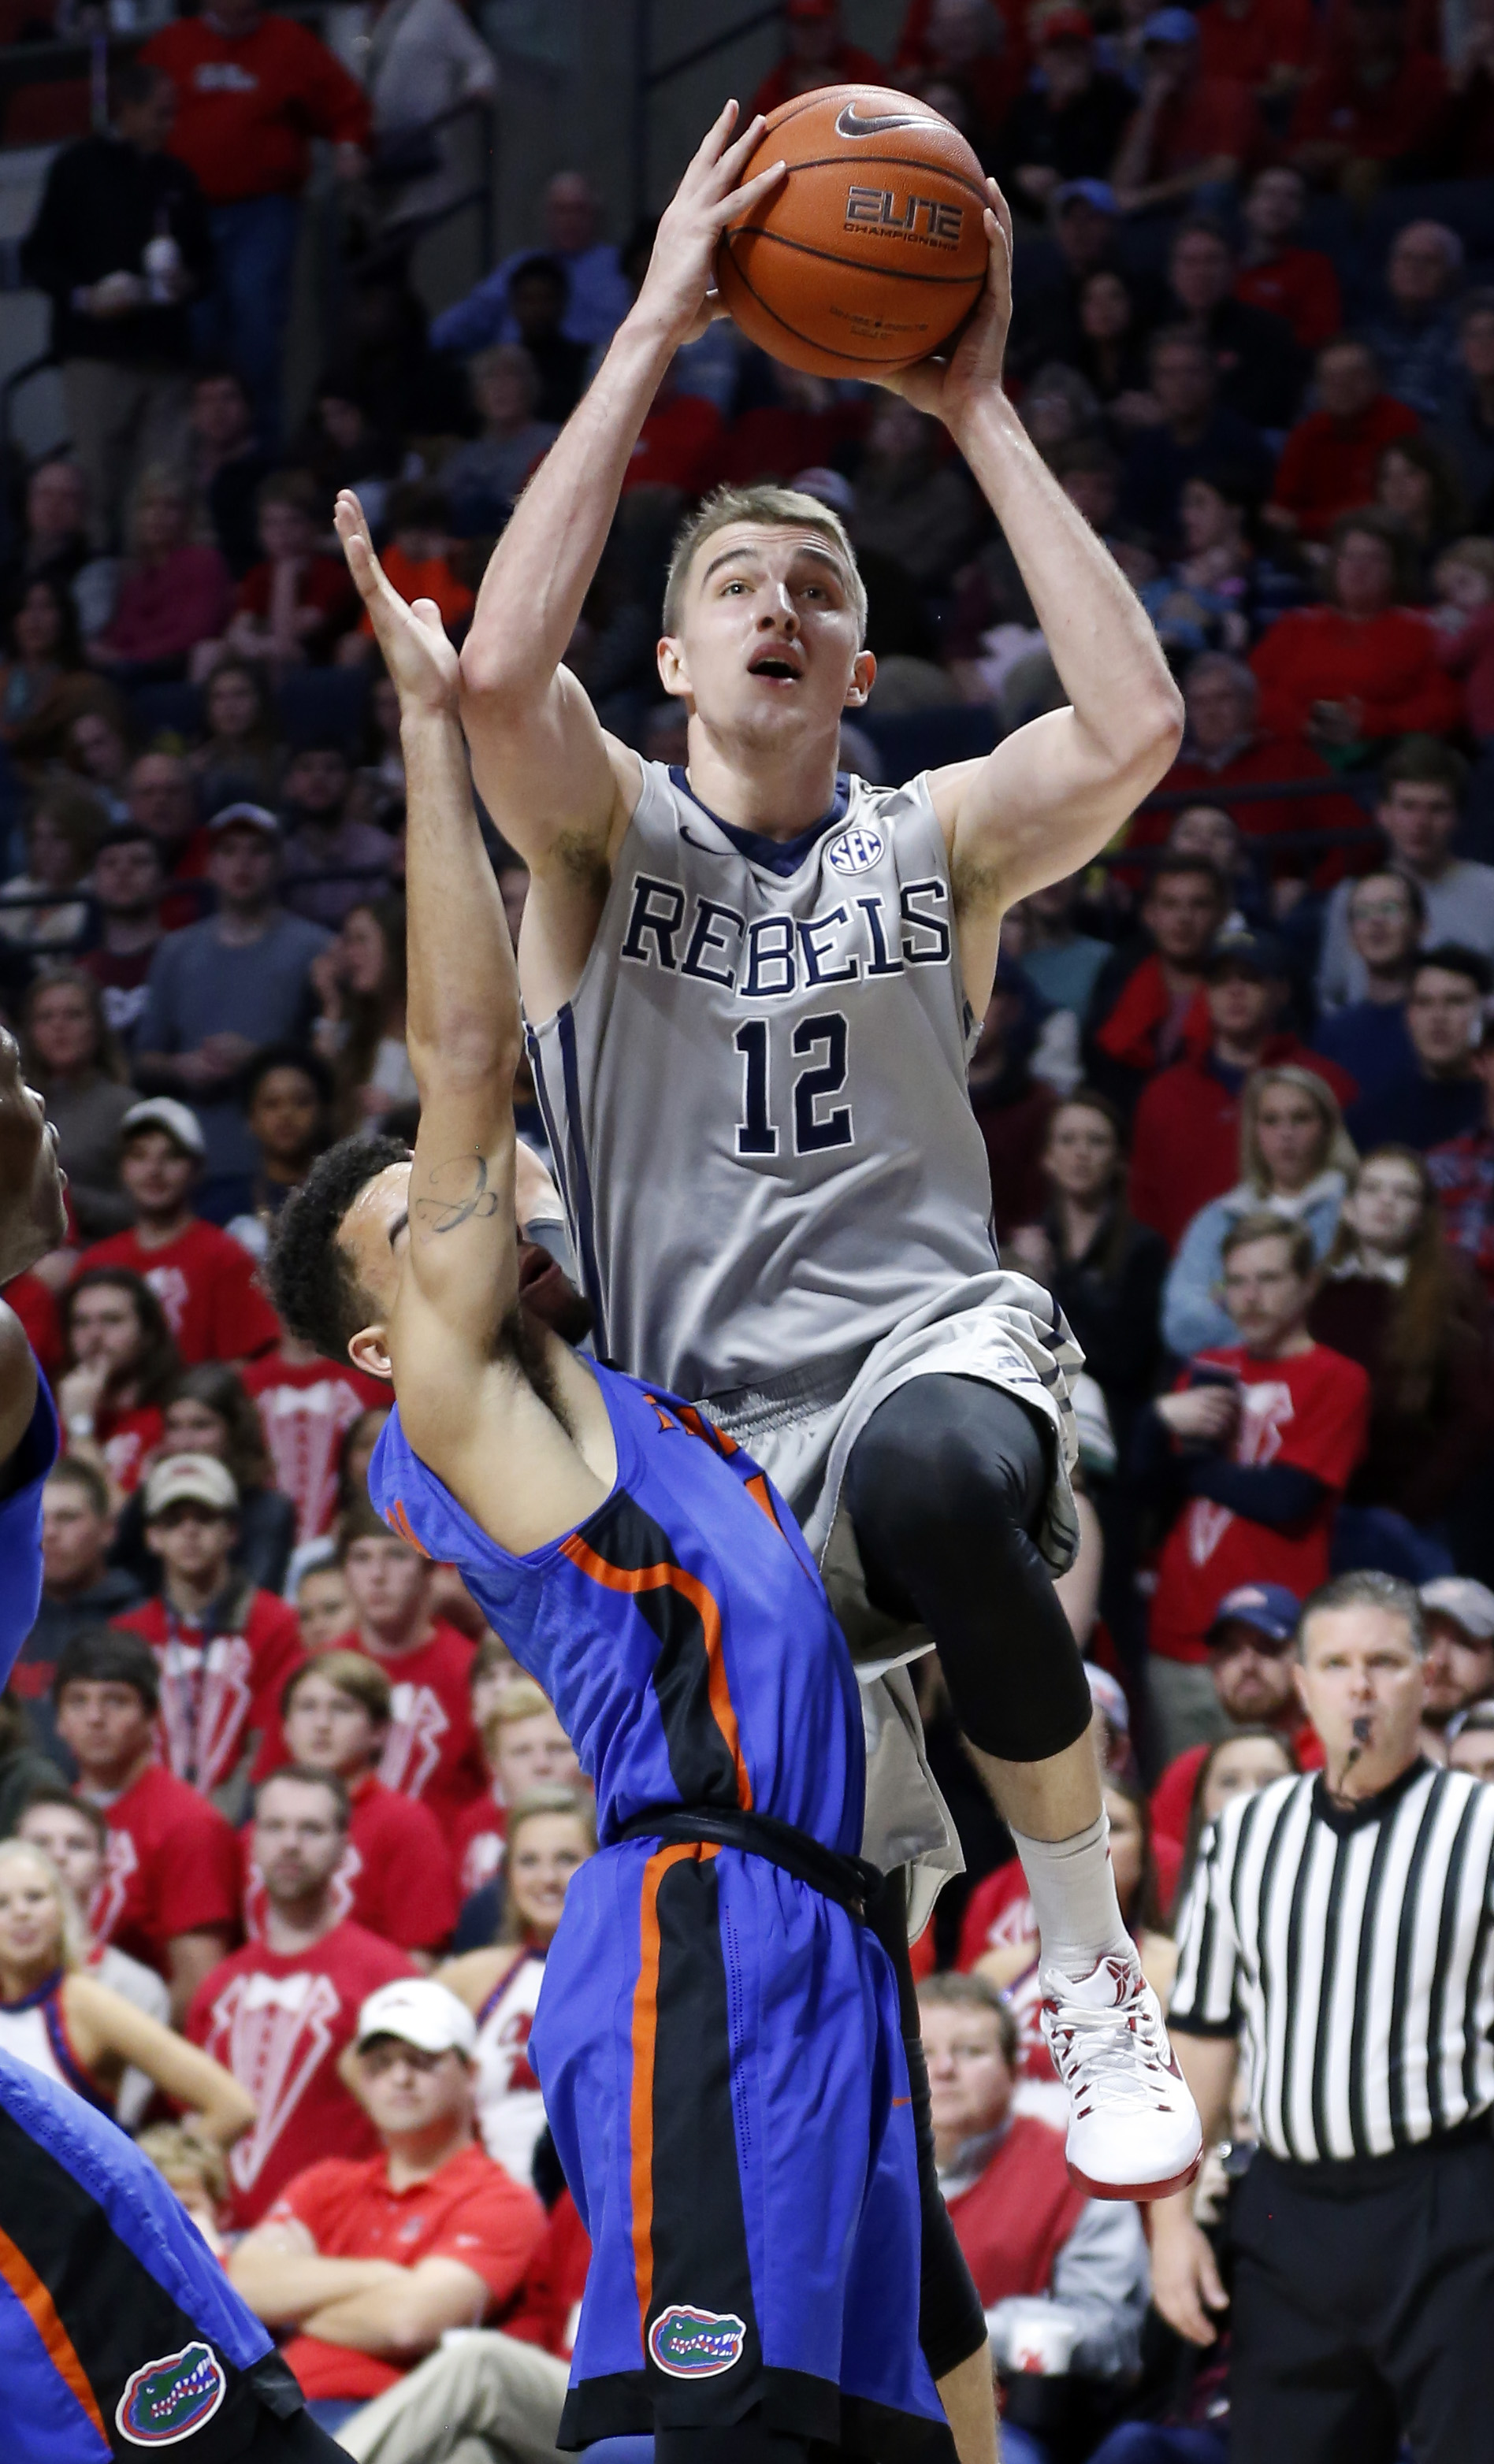 Mississippi forward Tomasz Gielo (12) attempts a shot over Florida guard Chris Chiozza (11) in the first half of an NCAA college basketball game in Oxford, Miss., Saturday, Jan. 16, 2016. (AP Photo/Rogelio V. Solis)